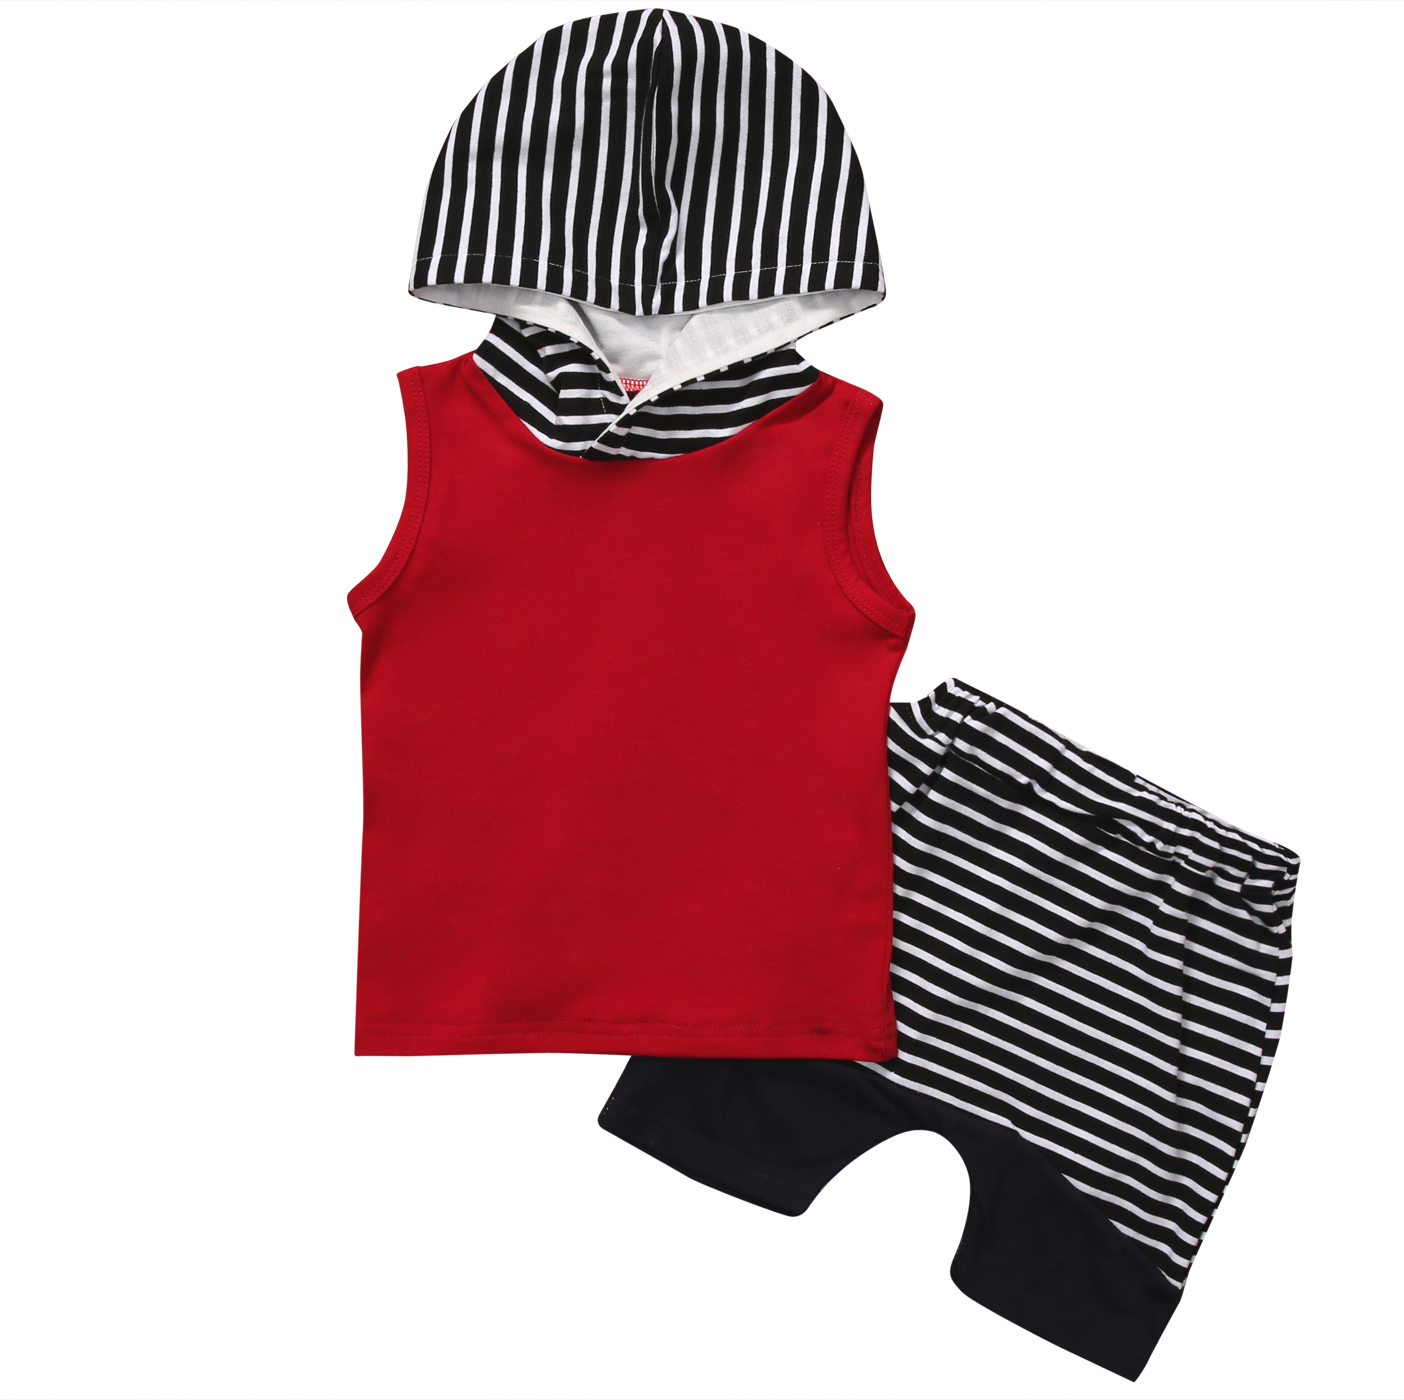 2017 Summer Baby Boy Clothes Sleeveless Hooded Tops +Striped Shorts Pant 2PCS Outfits Toddler Kids Clothing Set hot 0 4y toddler baby boy girl clothes long sleeve hooded t shirt tops and striped pant 2pcs outfit kids clothing set tracksuit